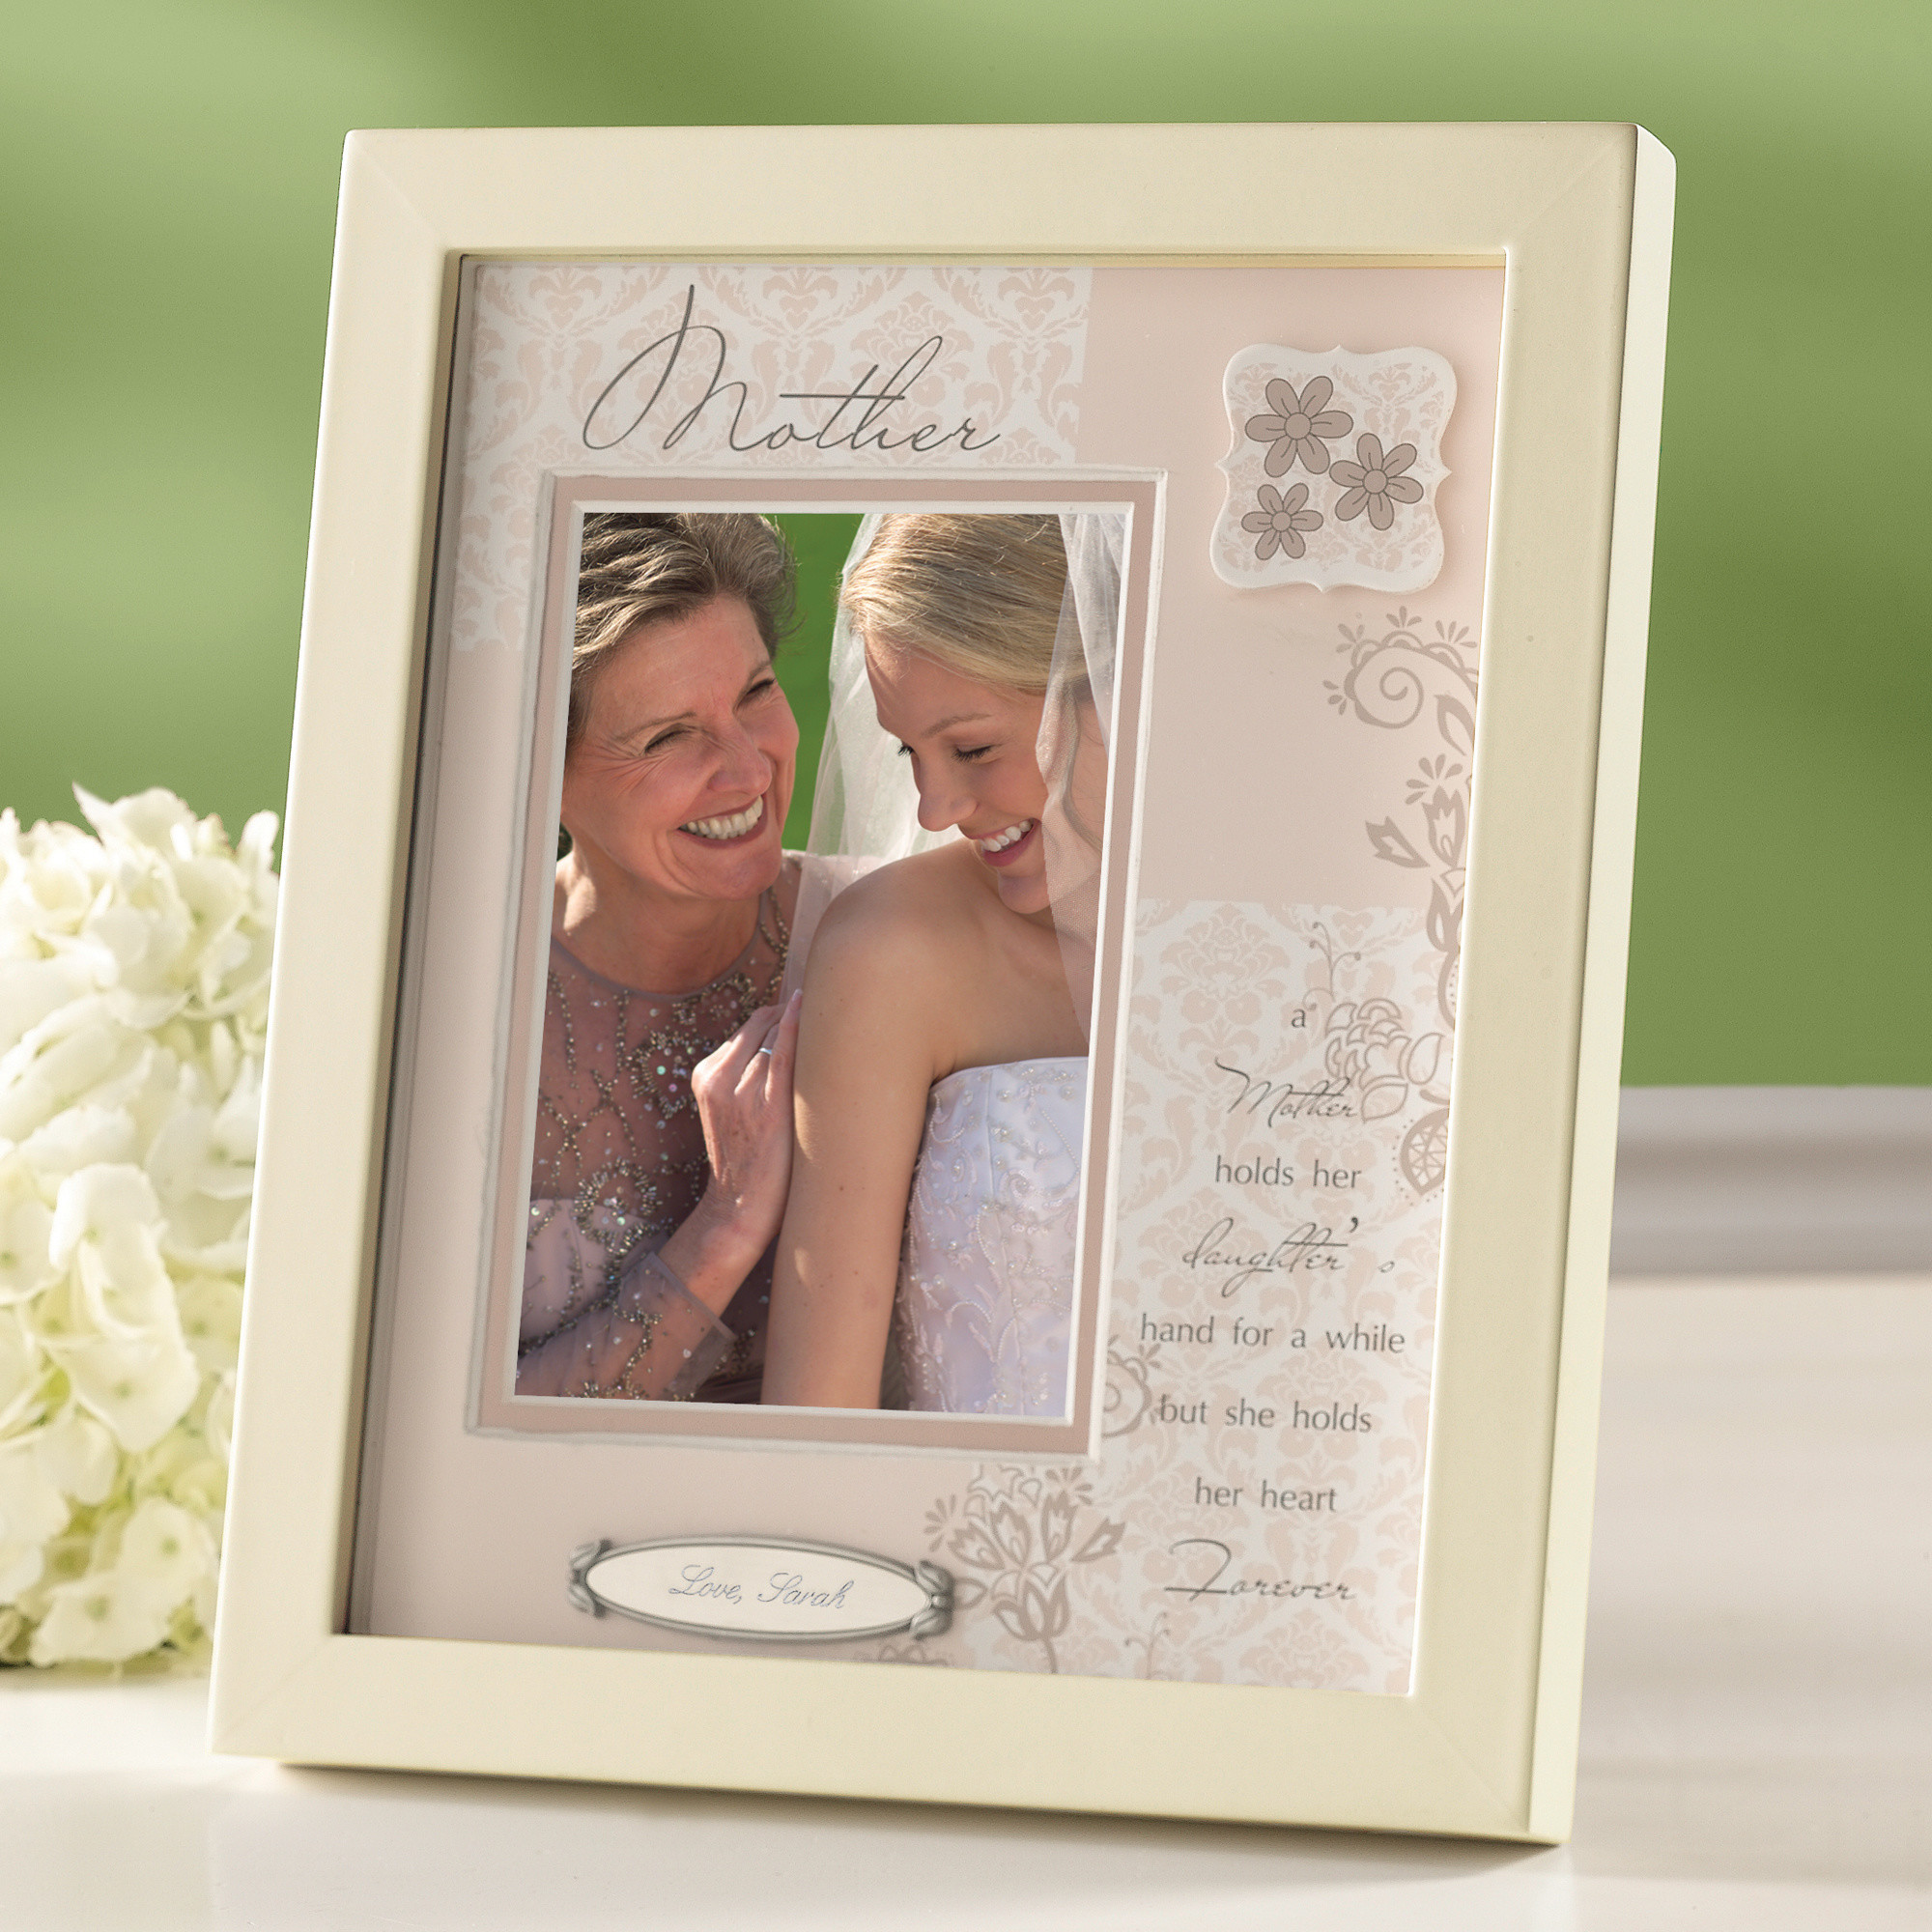 mother of the bride gifts - Mother Picture Frame